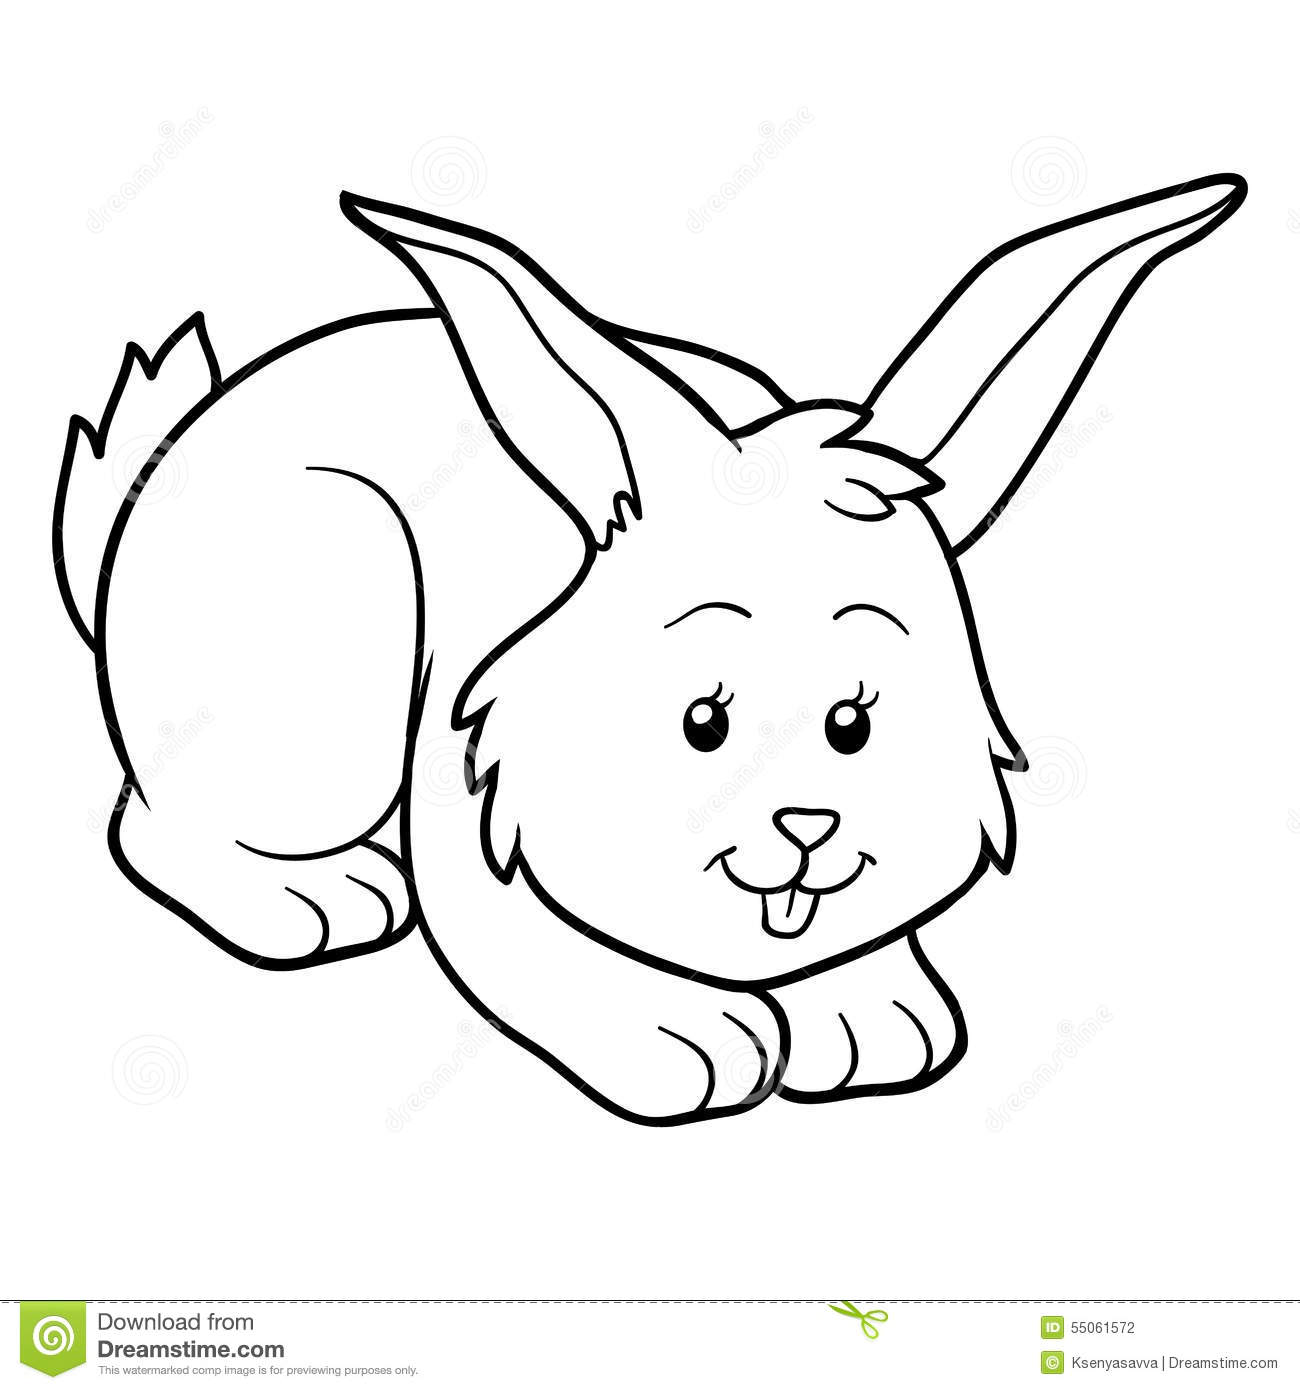 Coloring Book Rabbit Stock Vector Illustration Of Outline